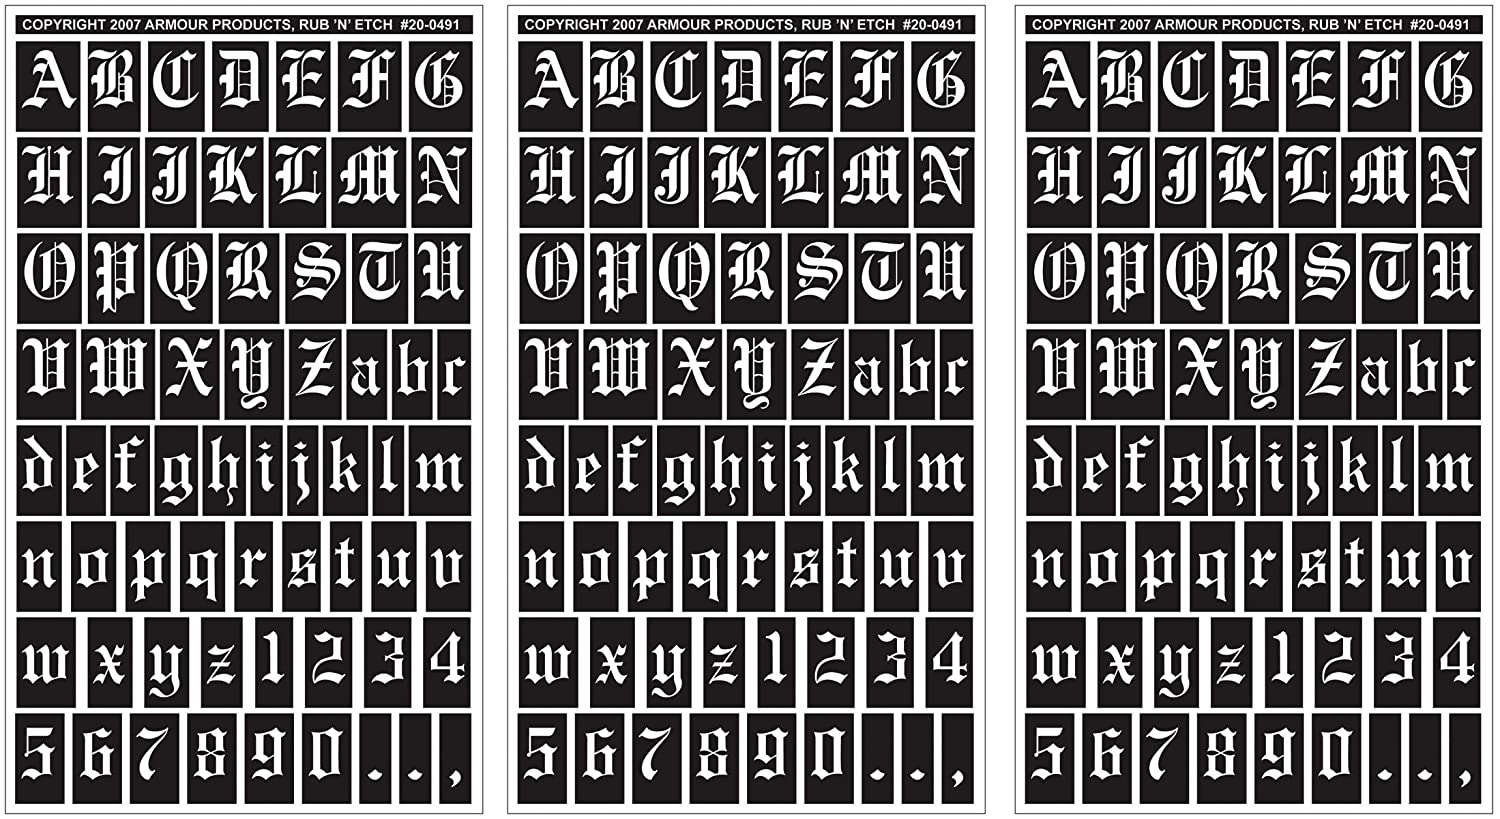 Armour Products Rub 'n' Etch Glass Etching Stencils 5X8 3/Pkg Old English Letters & Numbers 12-7026